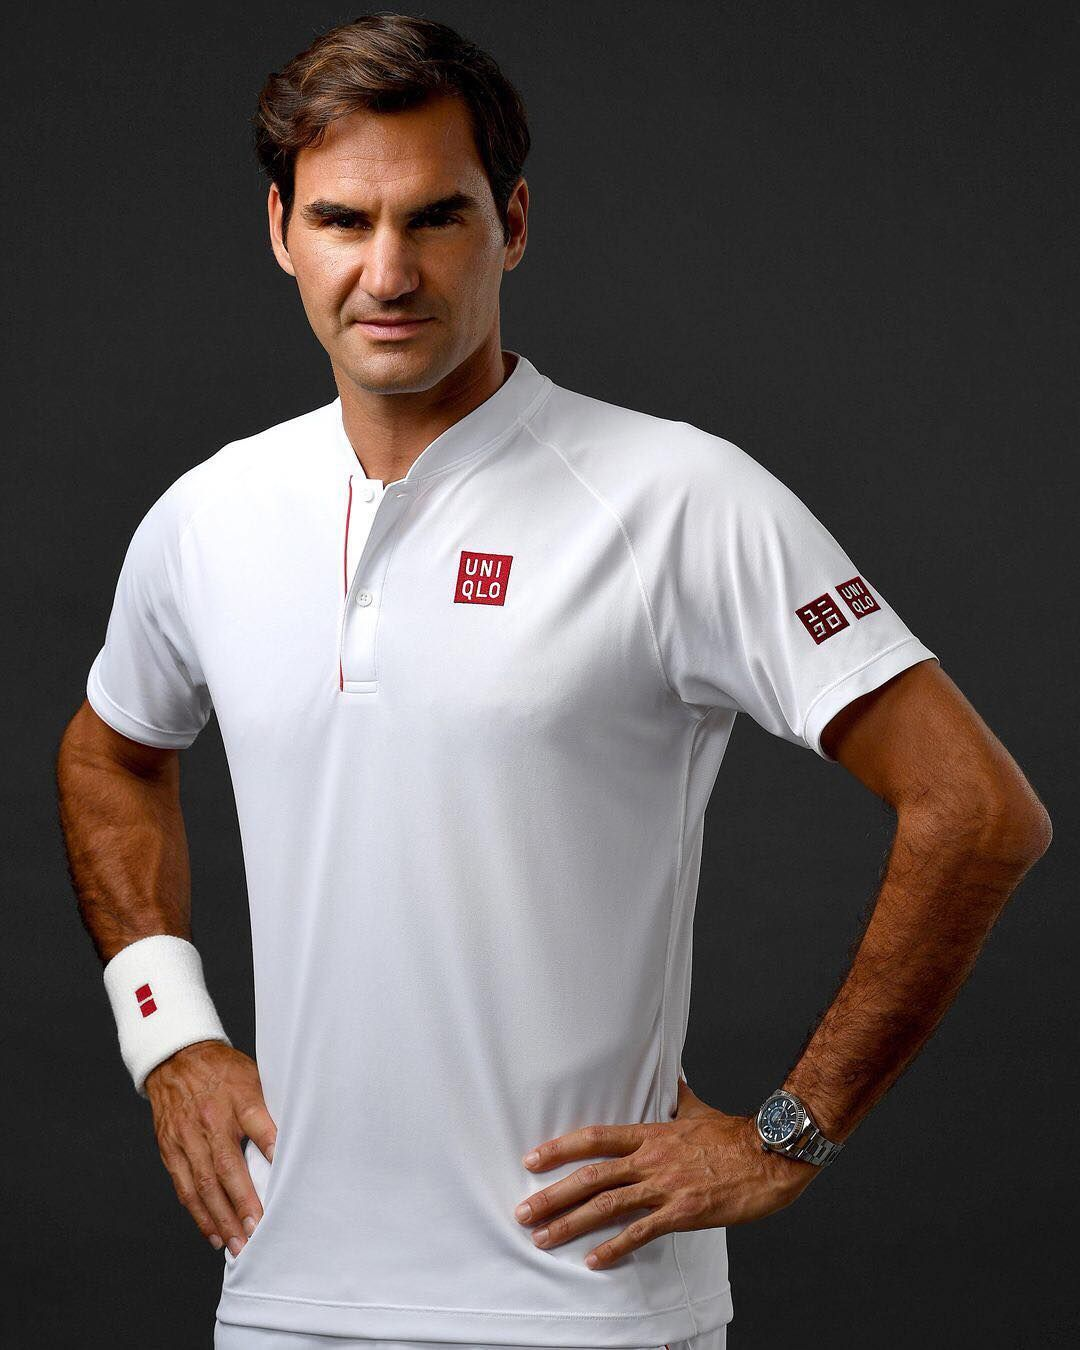 Onto Wearing…1 Walks Court Wimbledon's Center Rogerfederer hxBrsdtQC